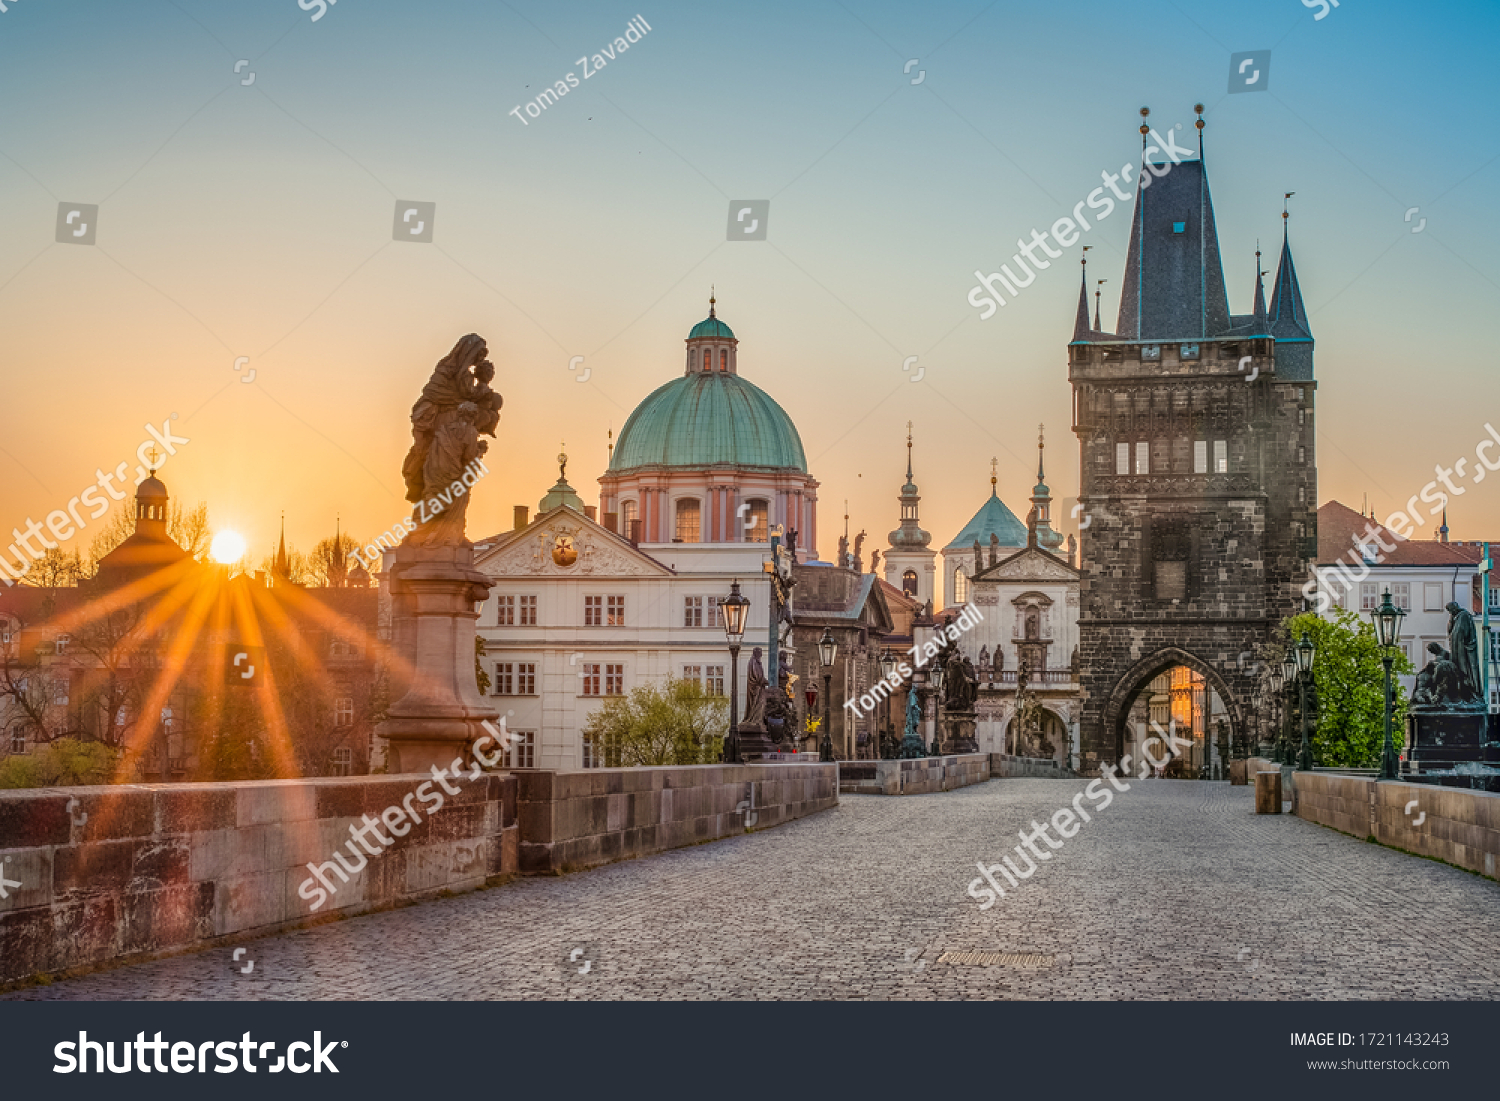 Sun rays filling the scene with colors during sunrise on empty deserted Charles bridge in Prague, Czech Republic  #1721143243